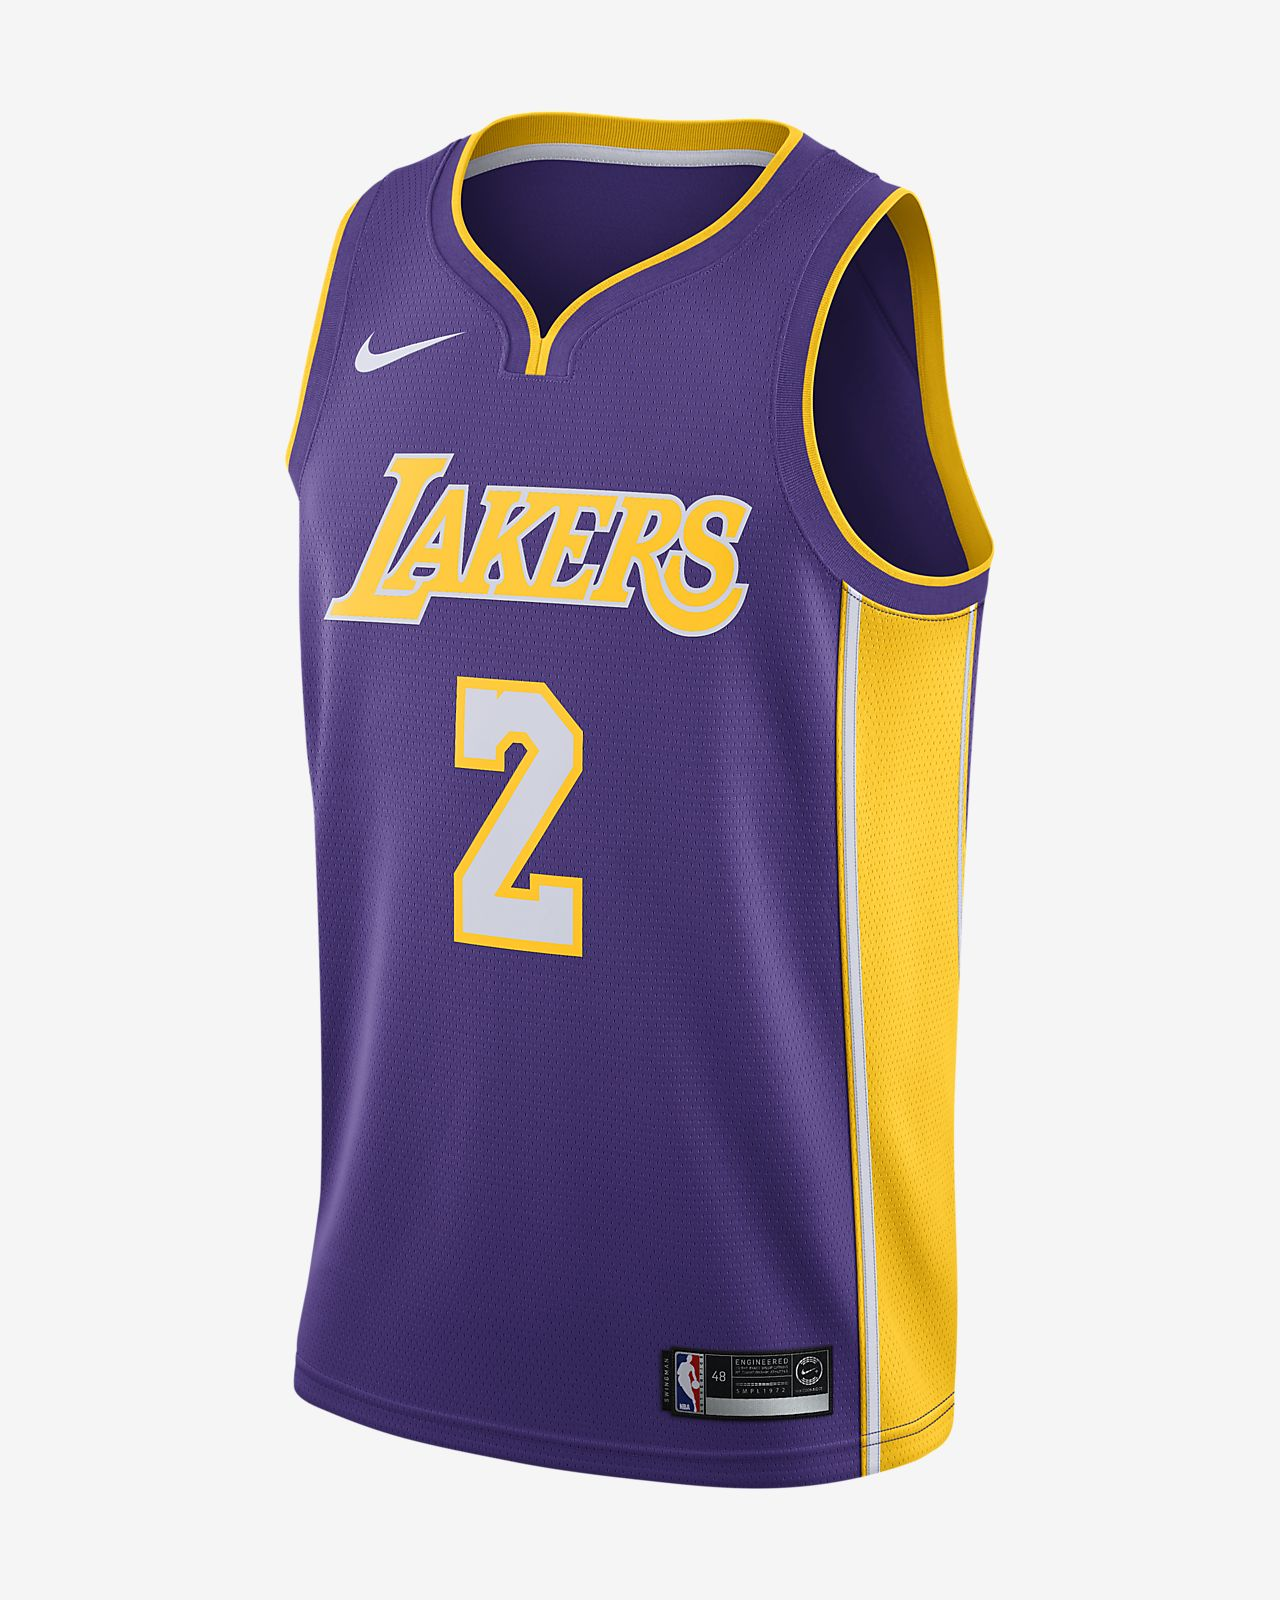 202d7bb4dfc Men s Nike NBA Connected Jersey. Lonzo Ball Icon Edition Swingman Jersey (Los  Angeles Lakers)